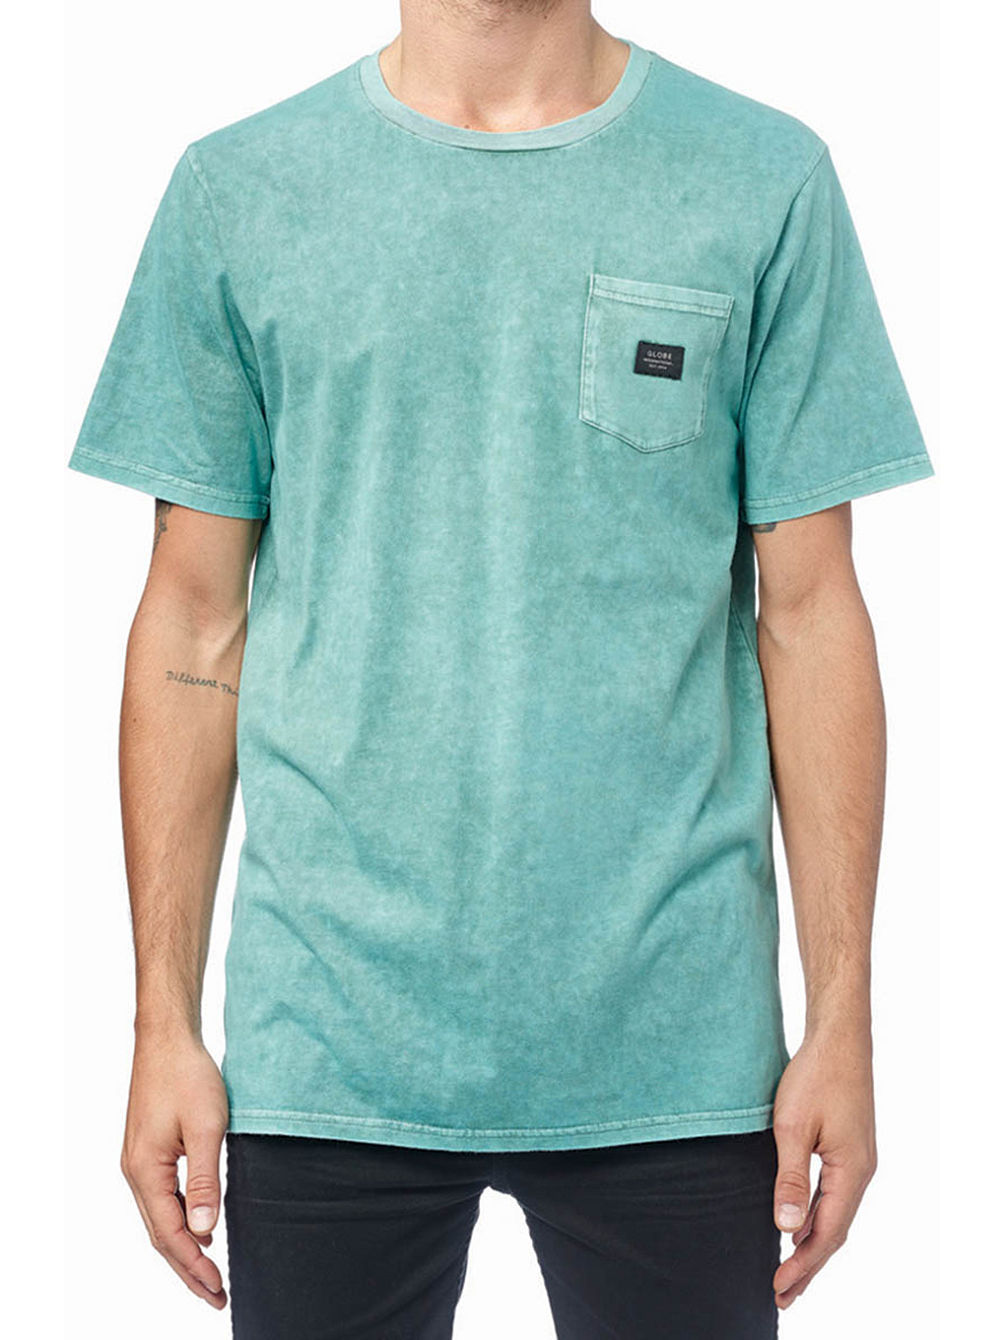 Goodstock Snow T-Shirt